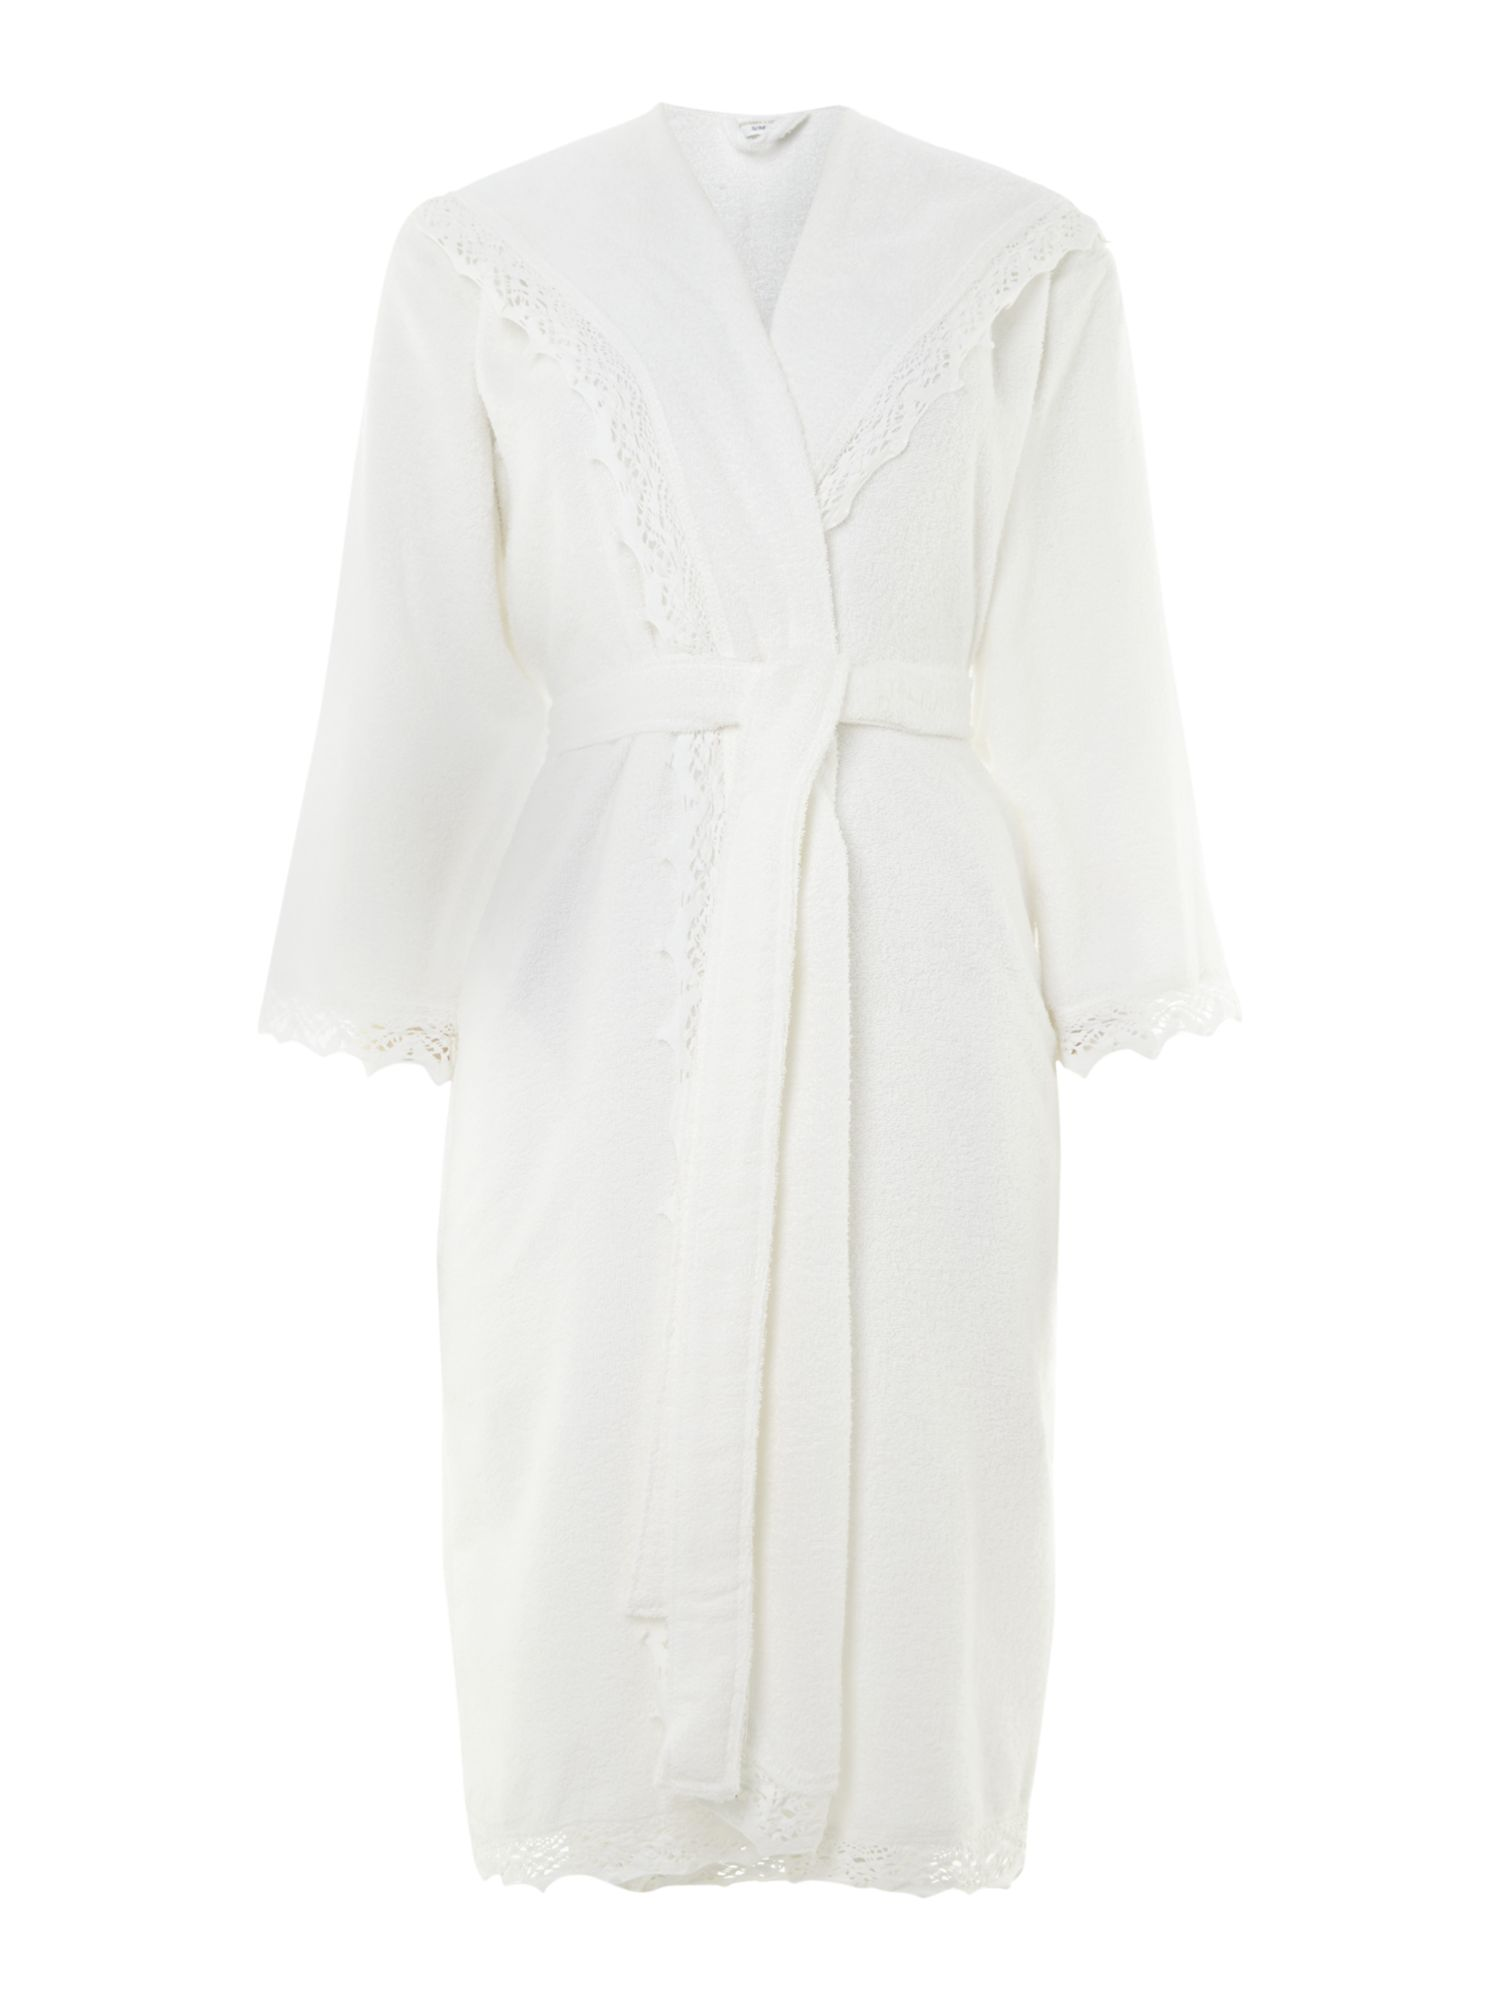 Crochet white robe